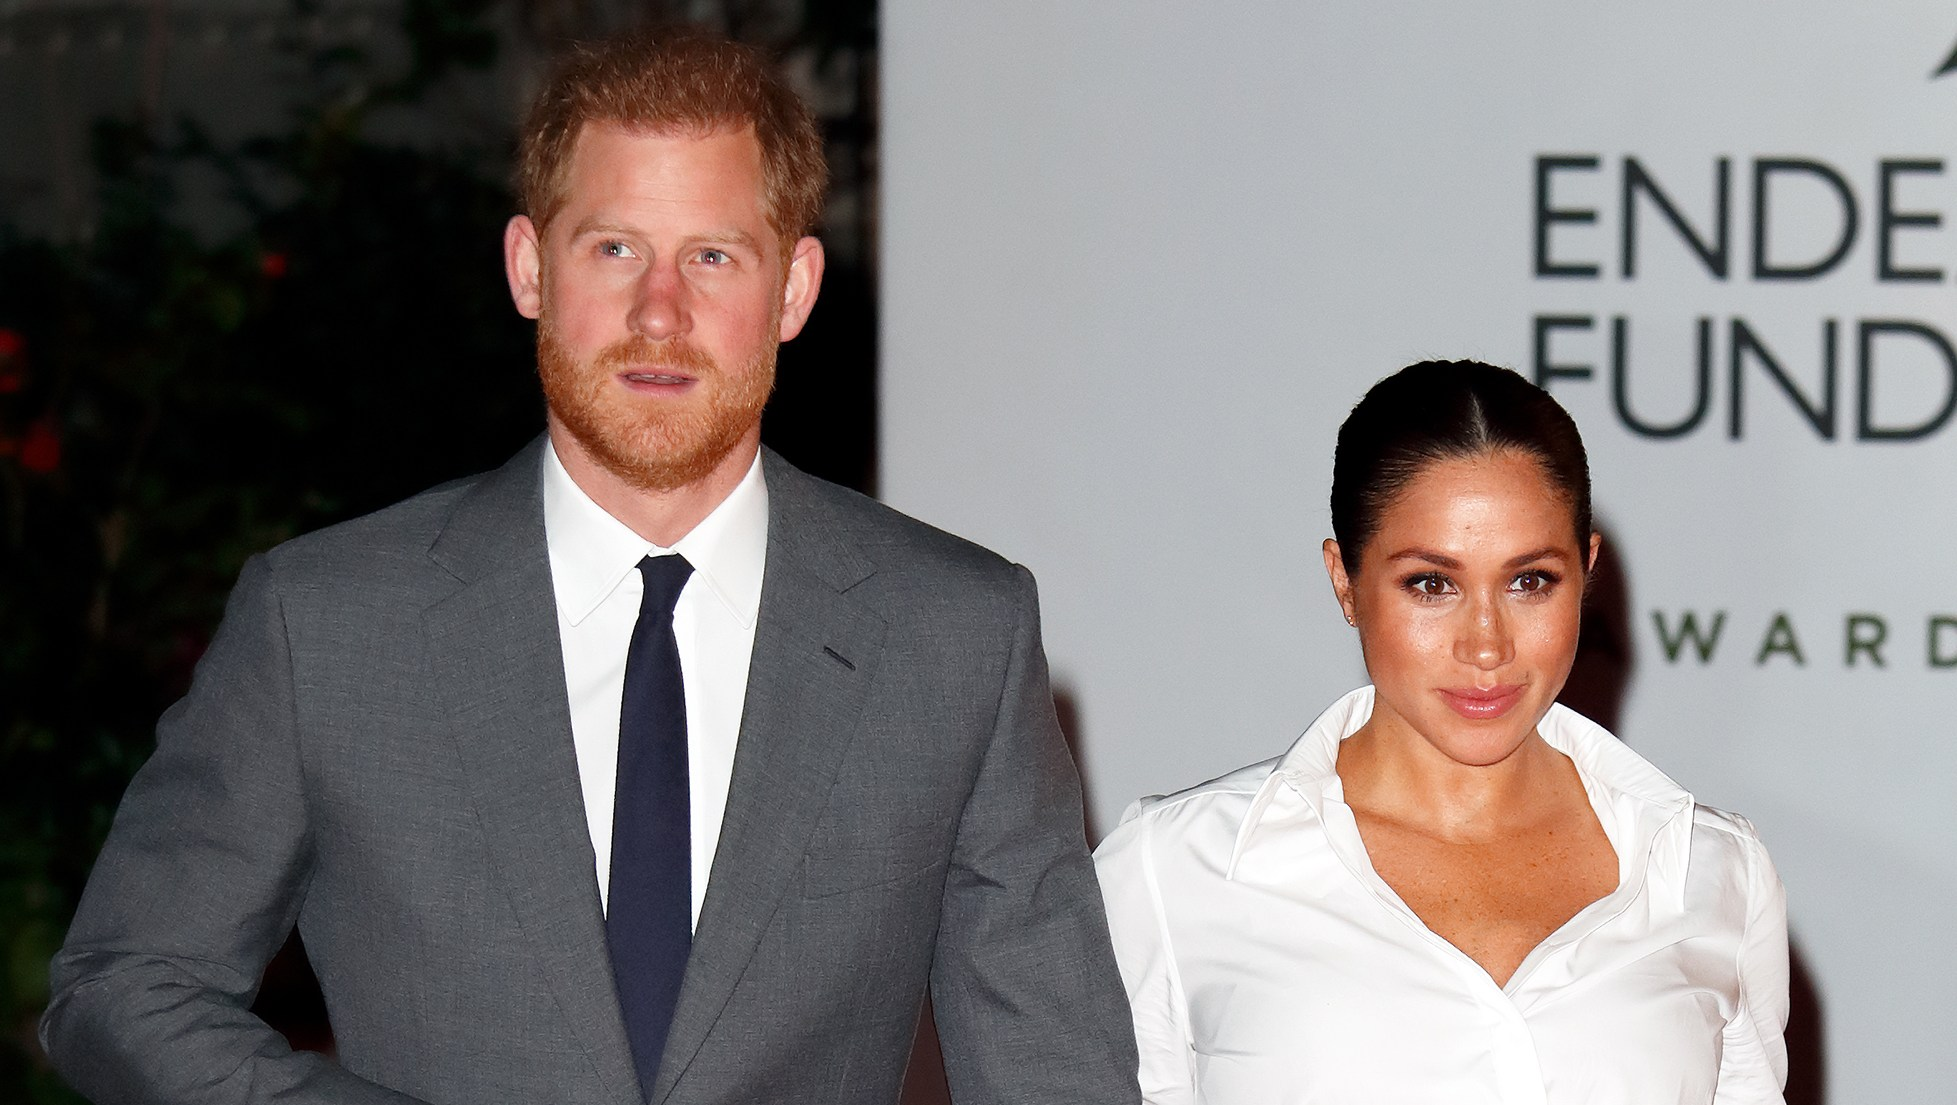 Prince Harry Pregnant Meghan Markle North Africa